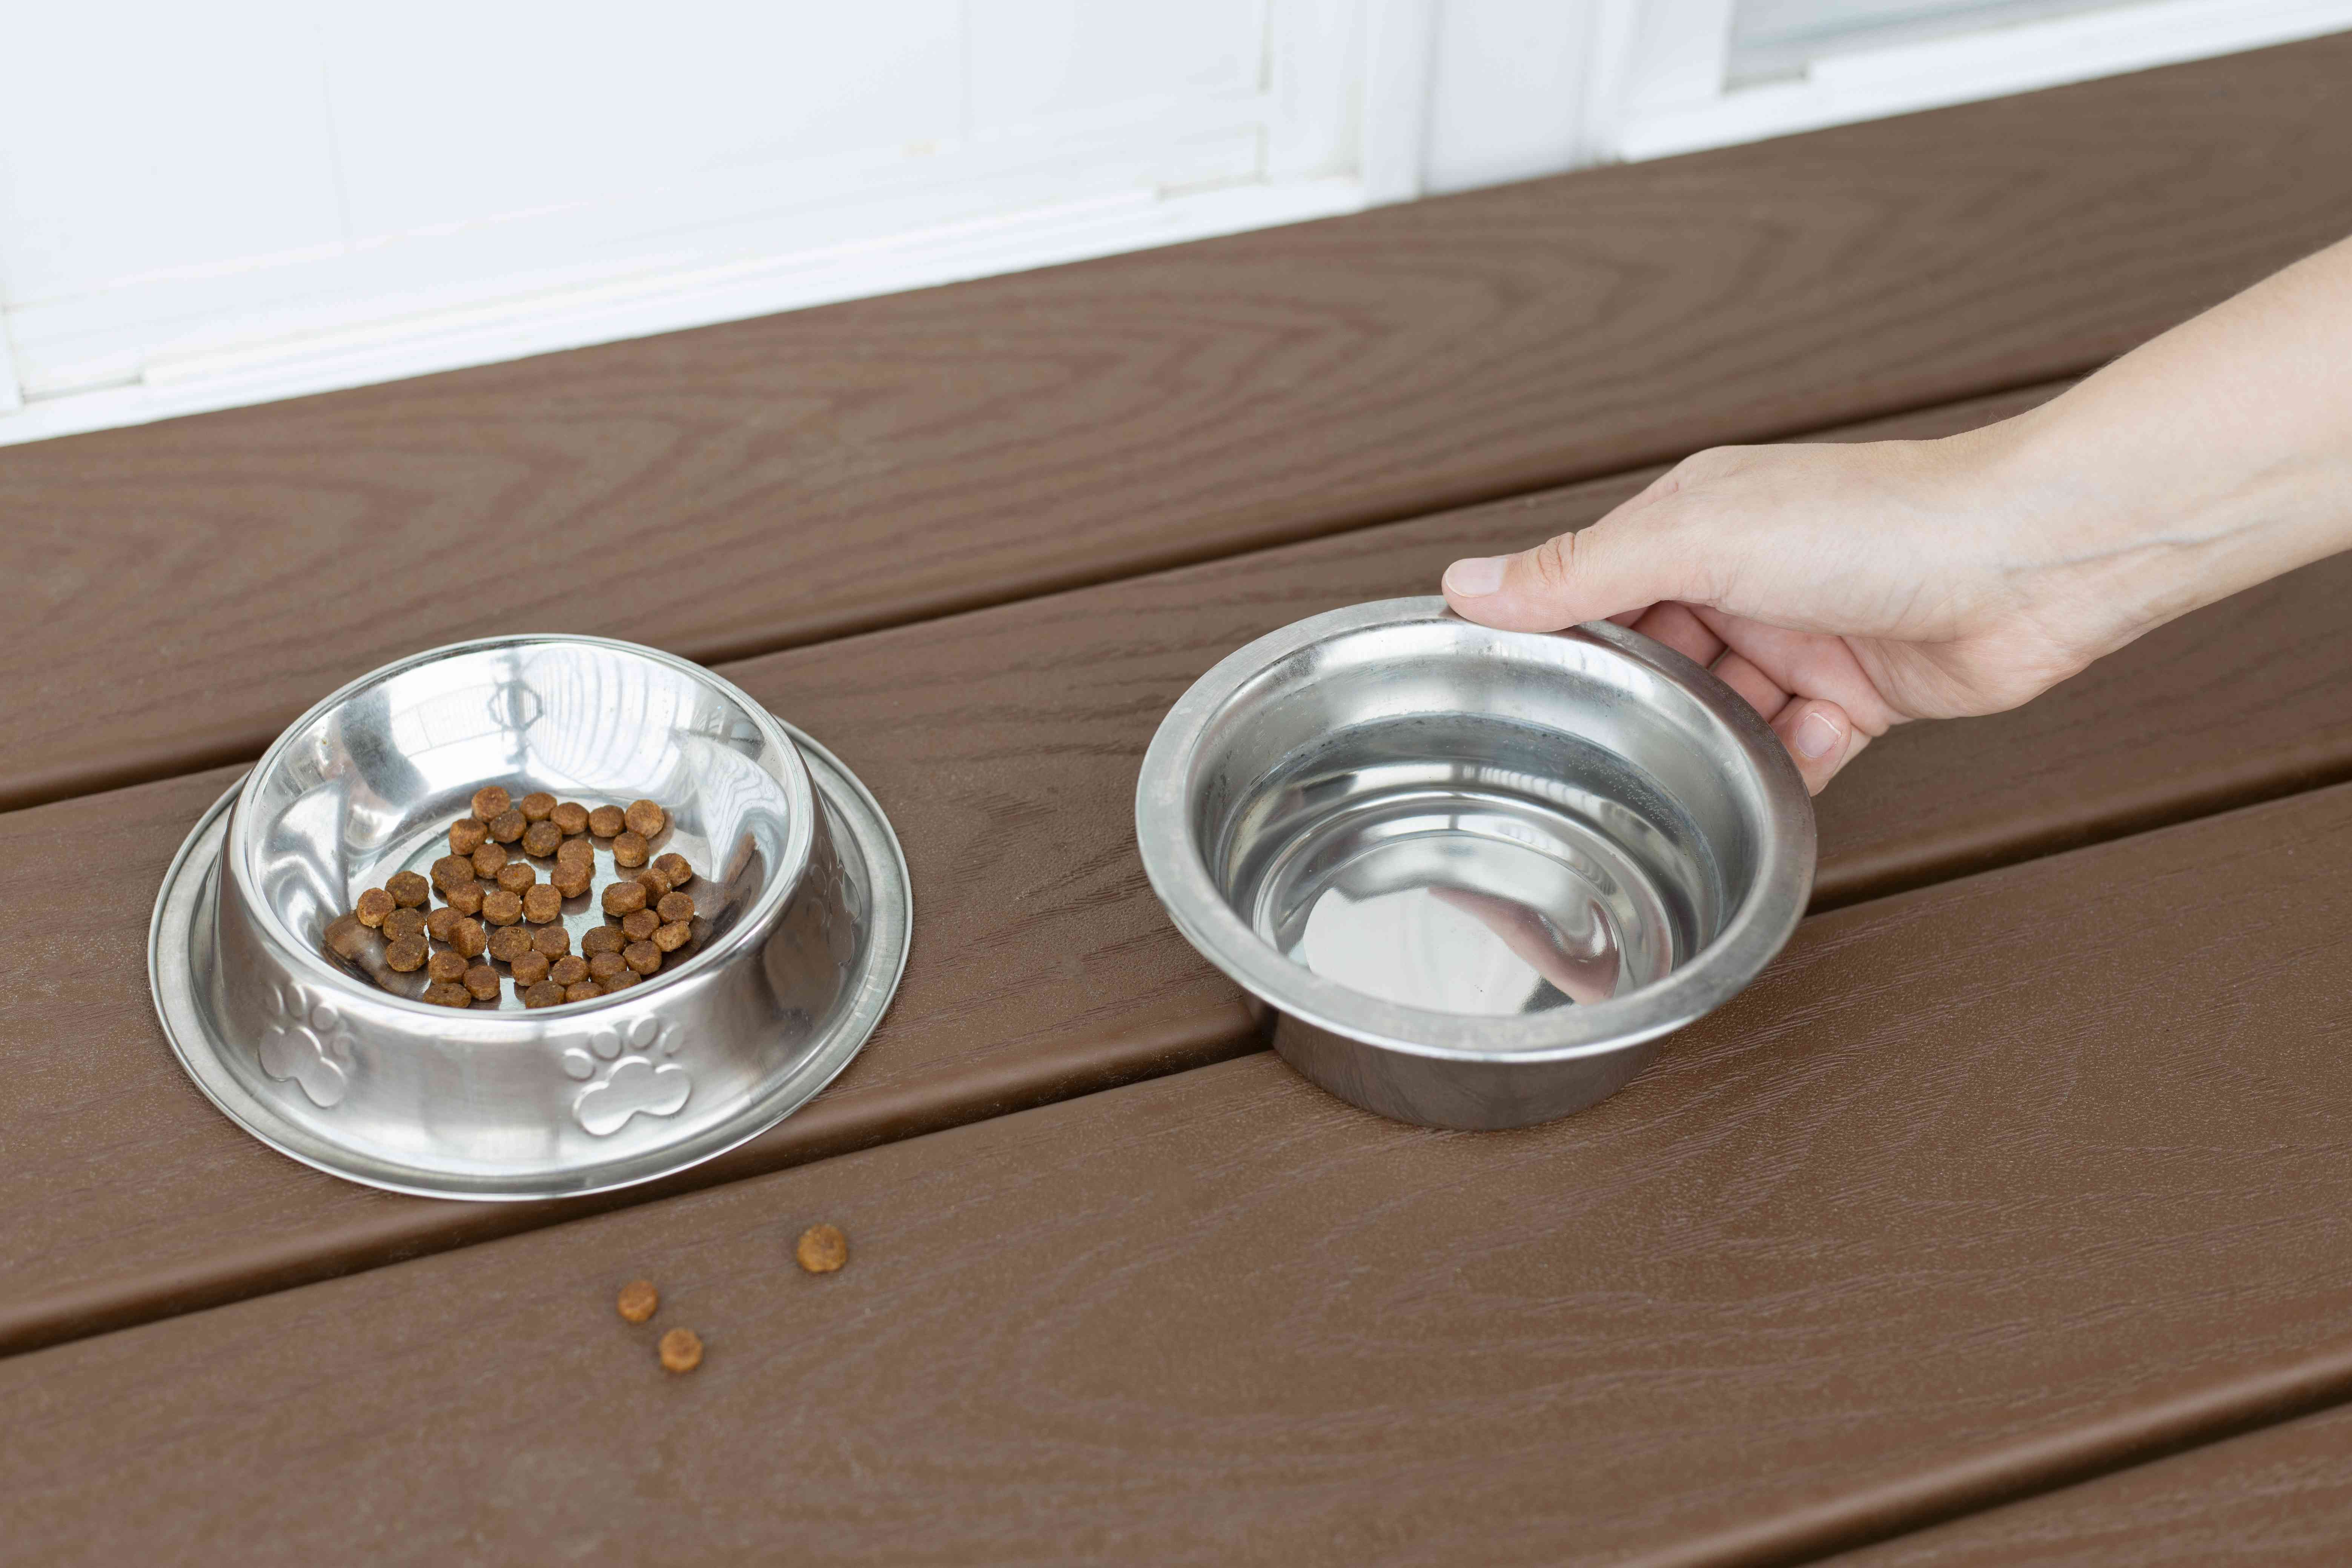 Metal pet bowls with water and food being removed to prevent ants